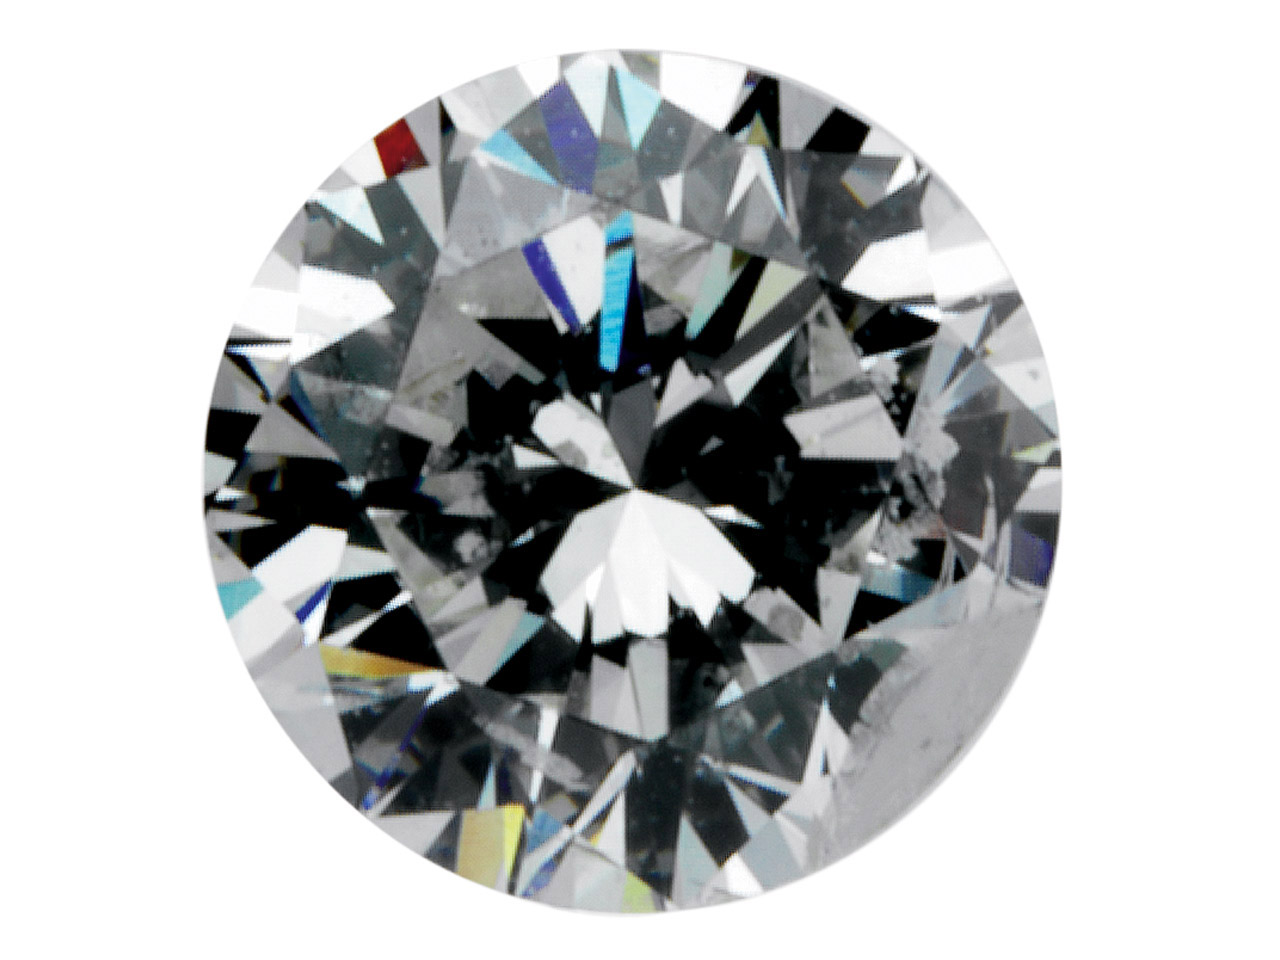 Diamond, Round, H-i/p2, 7pt/2.5mm